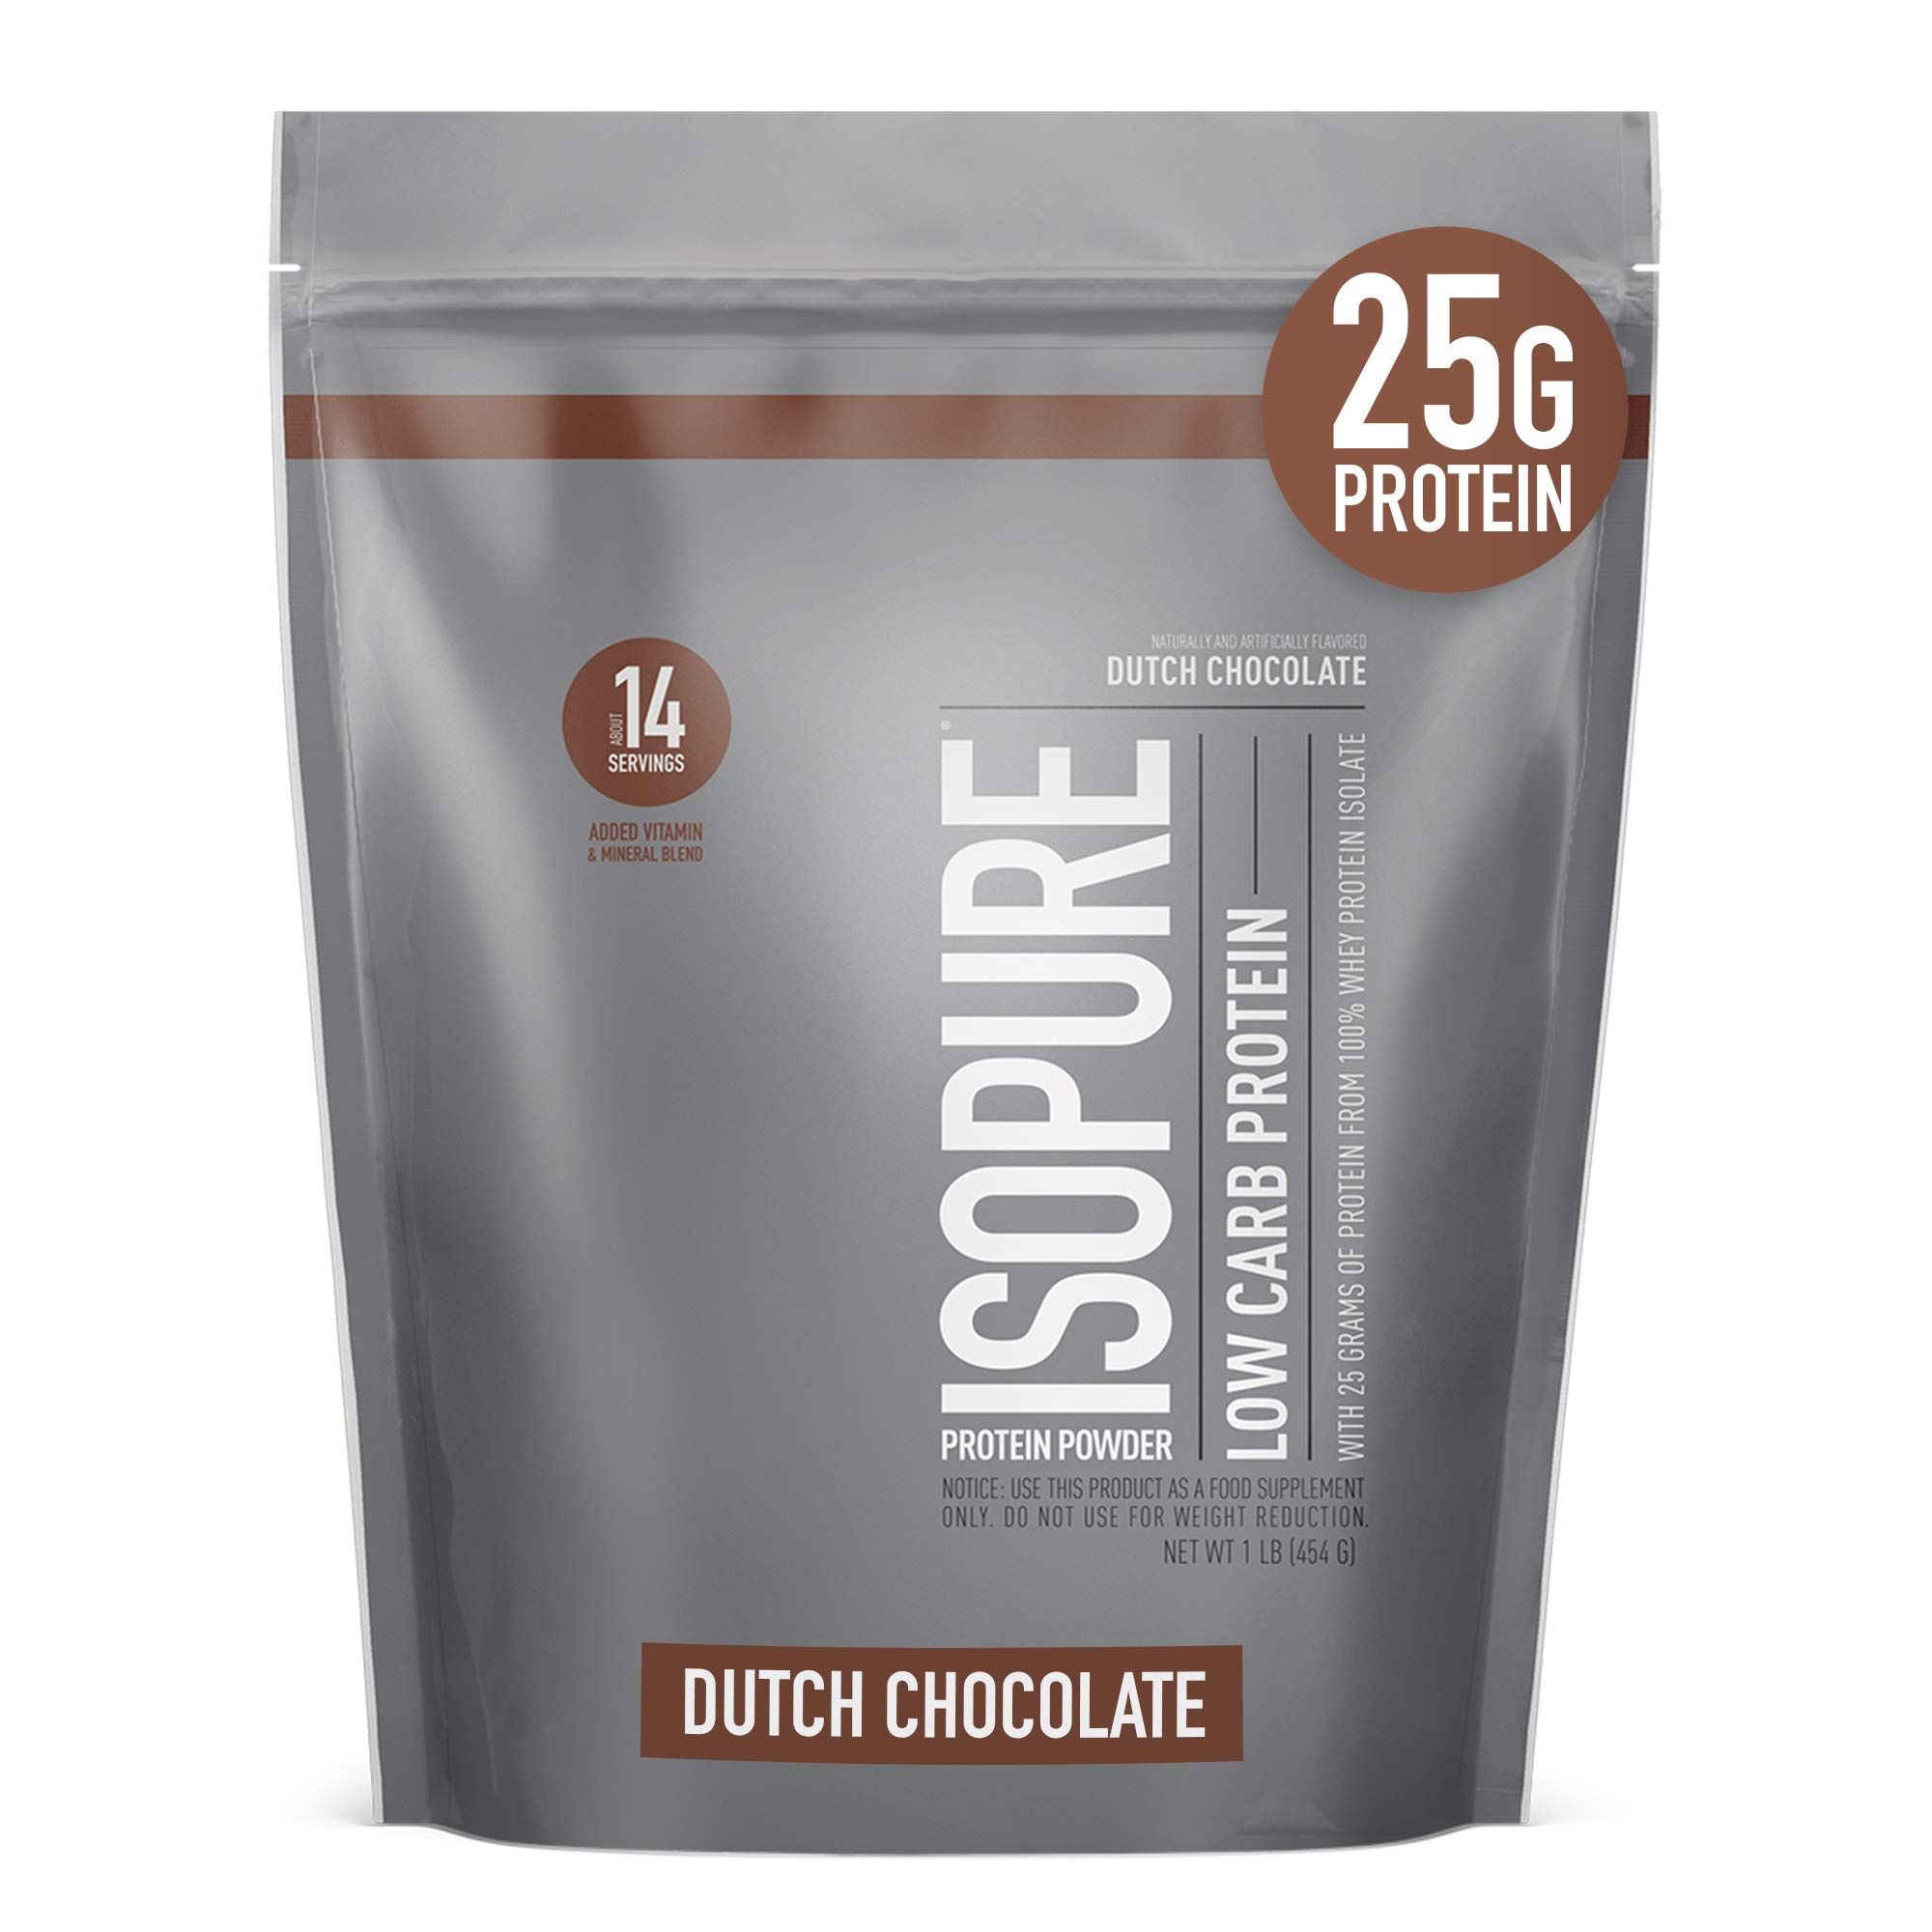 Isopure Low Carb, Vitamin C and Zinc for Immune Support, 25g Protein, Keto Friendly Protein Powder, 100% Whey Protein Isolate, Flavor: Dutch Chocolate, 1 Pound (Packaging May Vary)